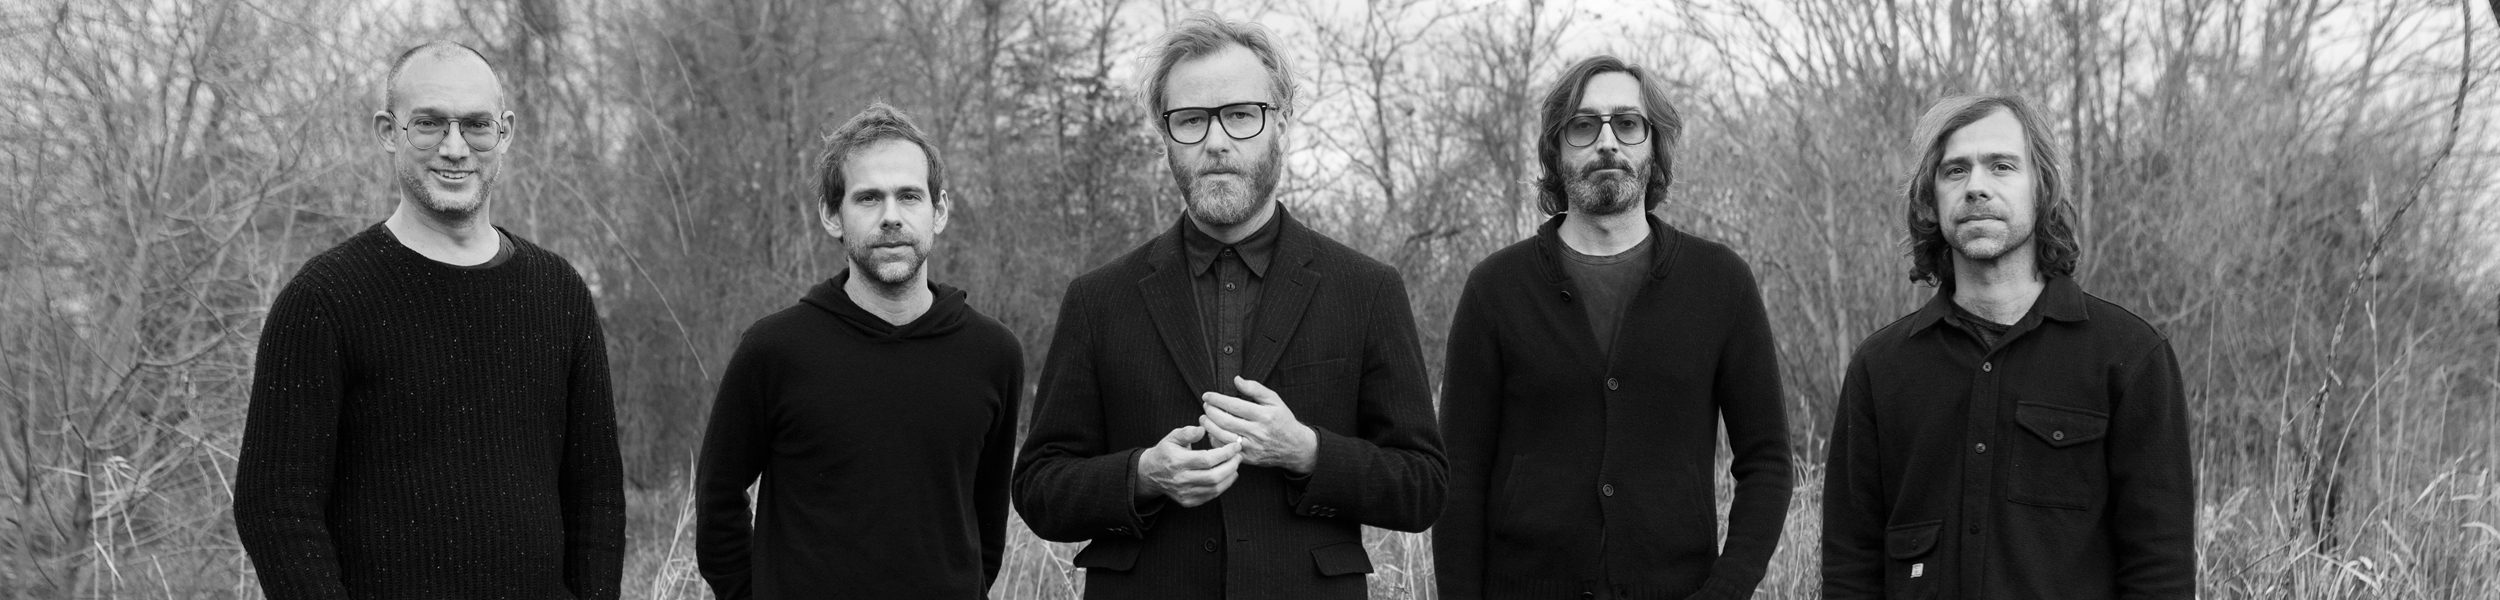 The National - New Track 'Guilty Party' Out Now, Plus Special Collaborative Concert